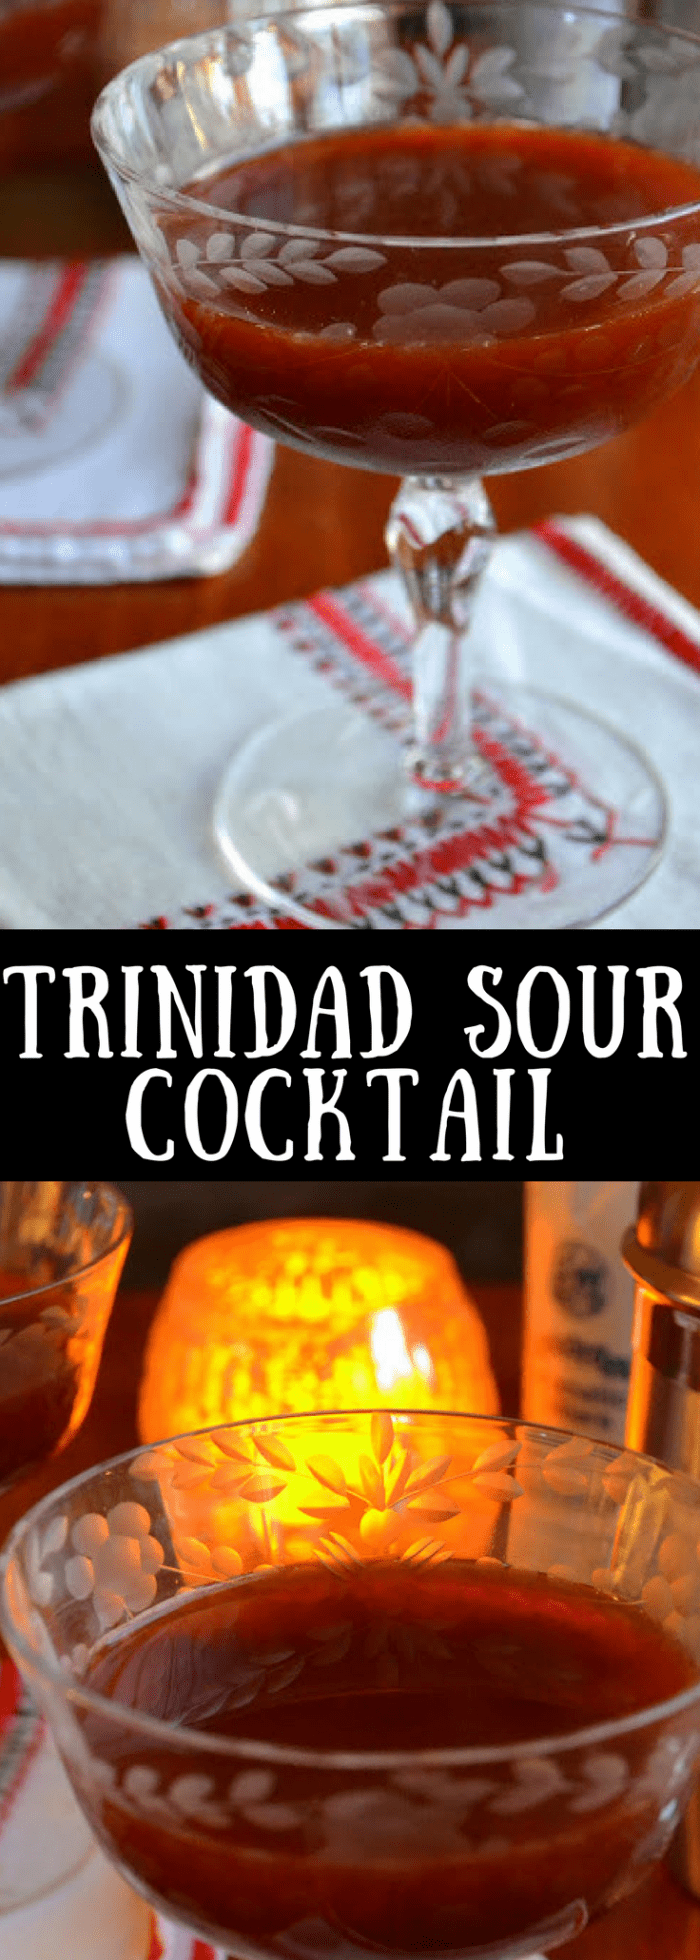 The Trinidad Sour Cocktail is quite possibly the most romantic cocktail in the world...with its deep crimson color and seductive flavor, it's definitely one you'll want to have on hand for that special night. #cocktails, #bitters #Valentinesdaycocktail #romantic #Valentinesday #datenight #redcocktail